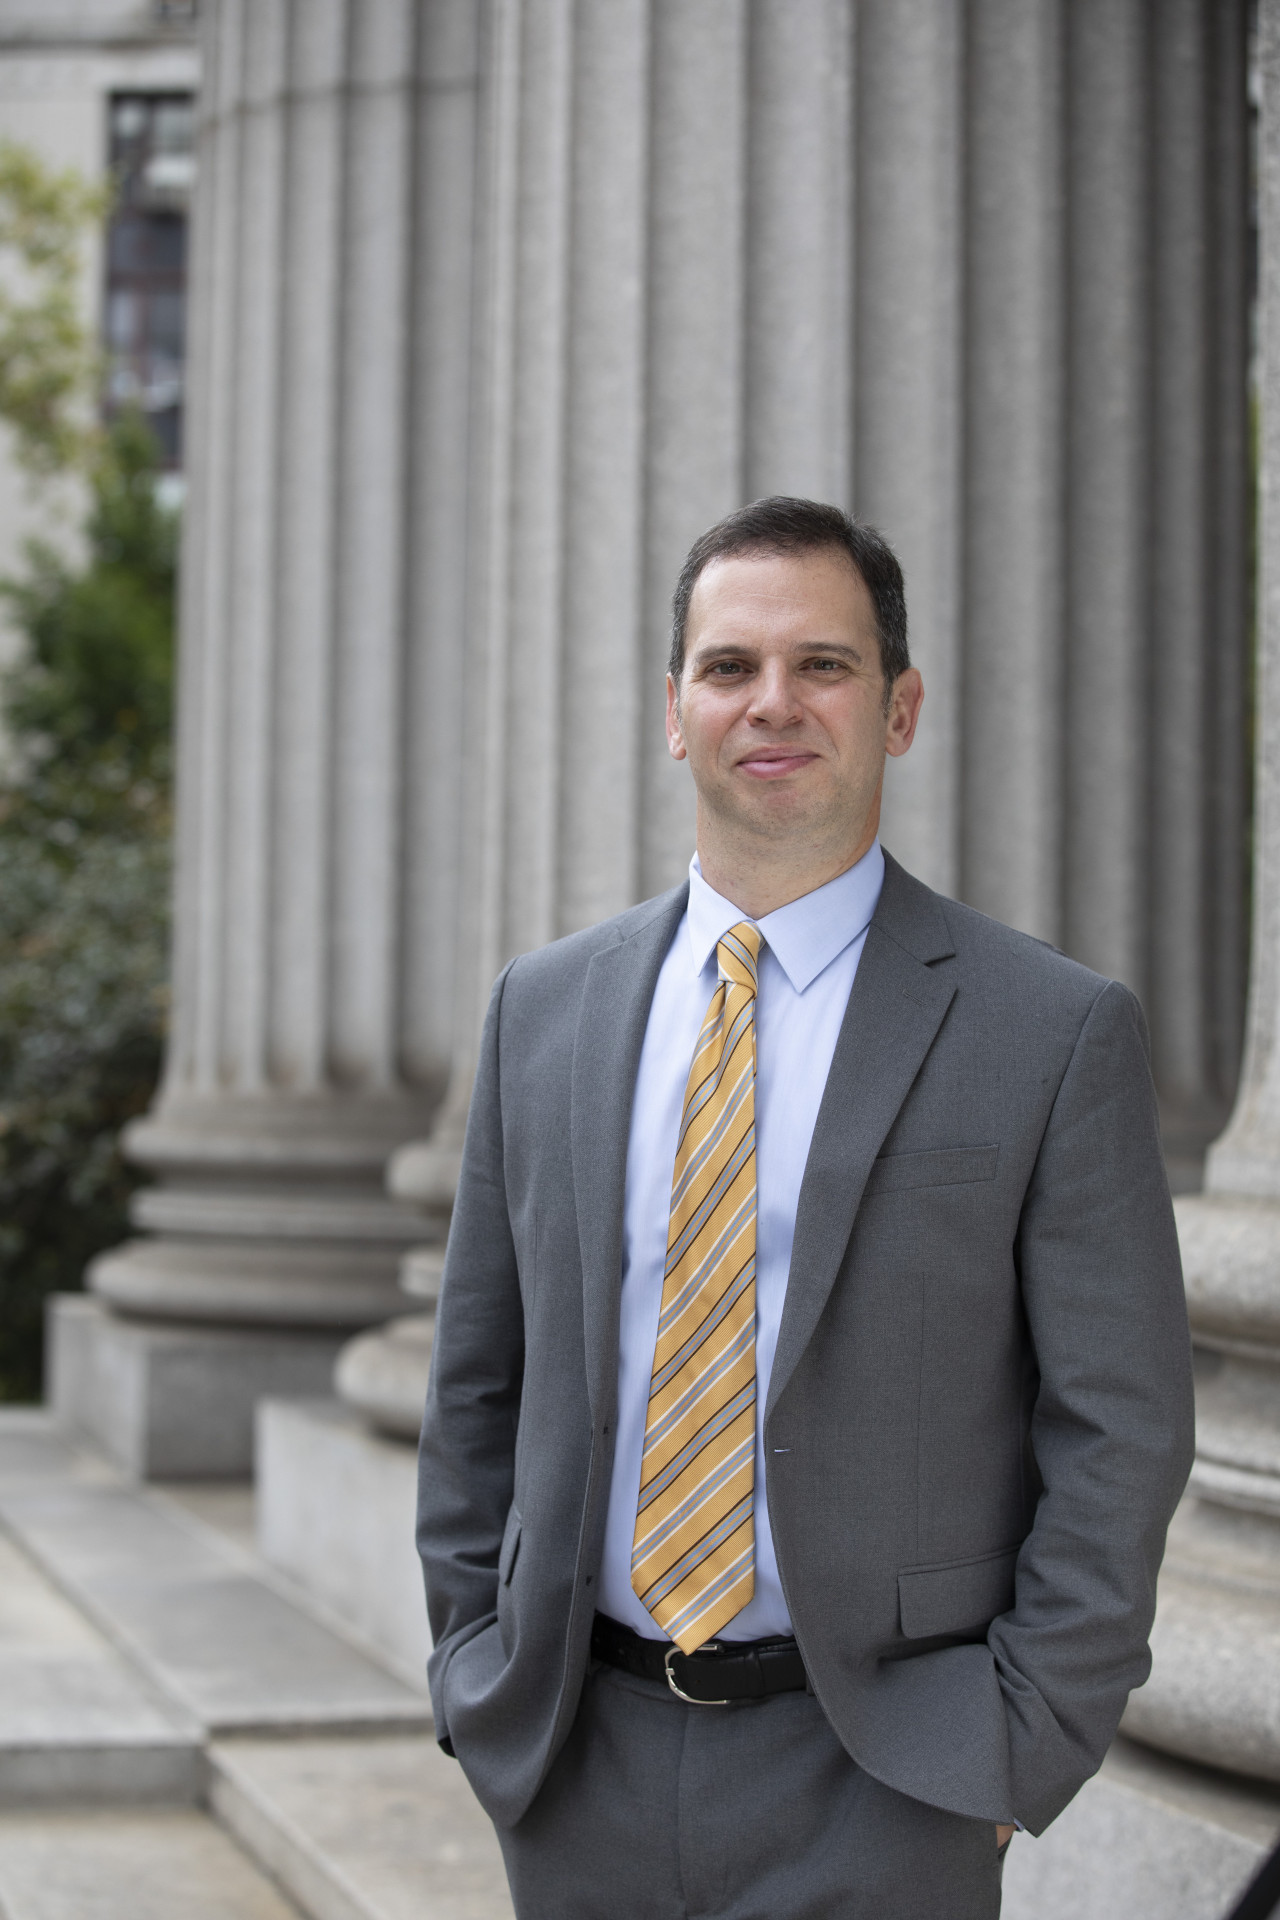 Dan Quart in a suit in front of the New York County Court House